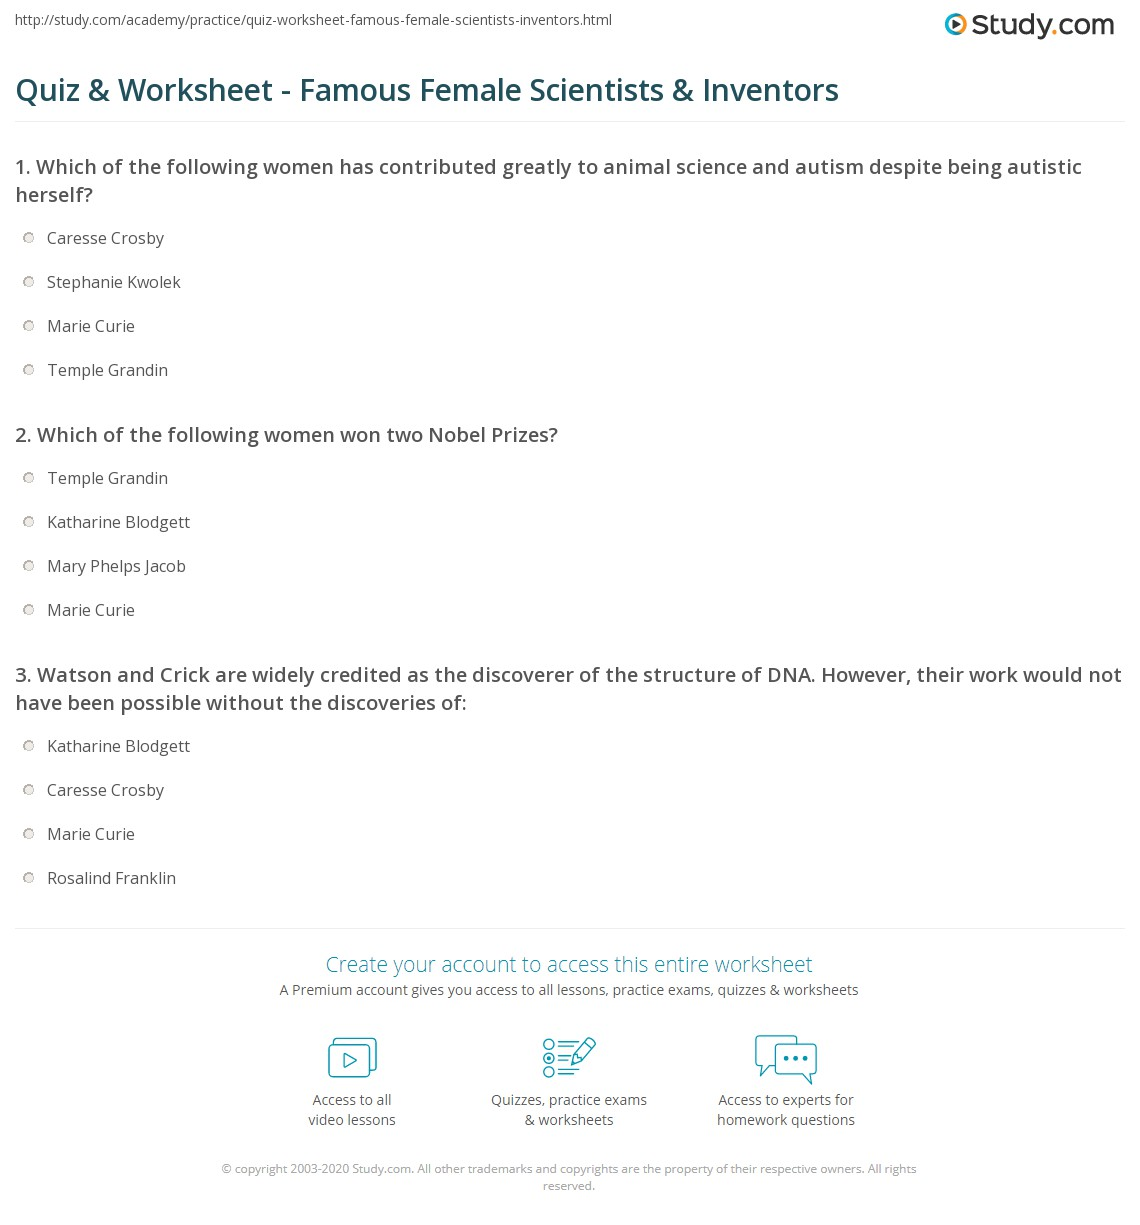 quiz worksheet famous female scientists inventors. Black Bedroom Furniture Sets. Home Design Ideas